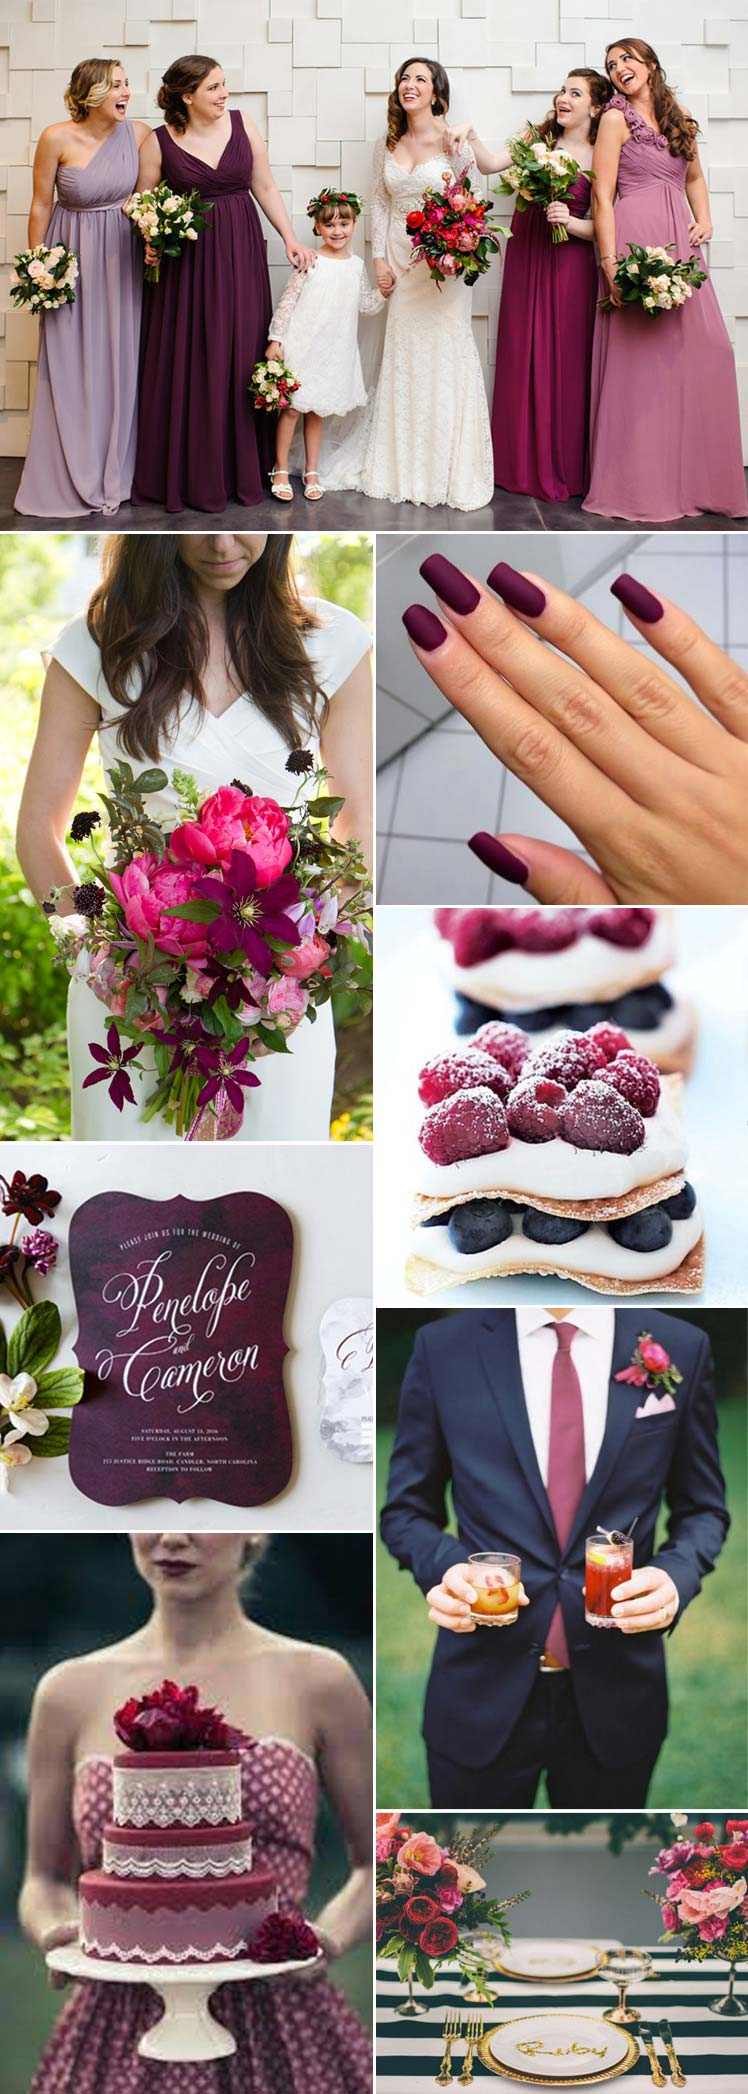 Berry wedding colour scheme ideas